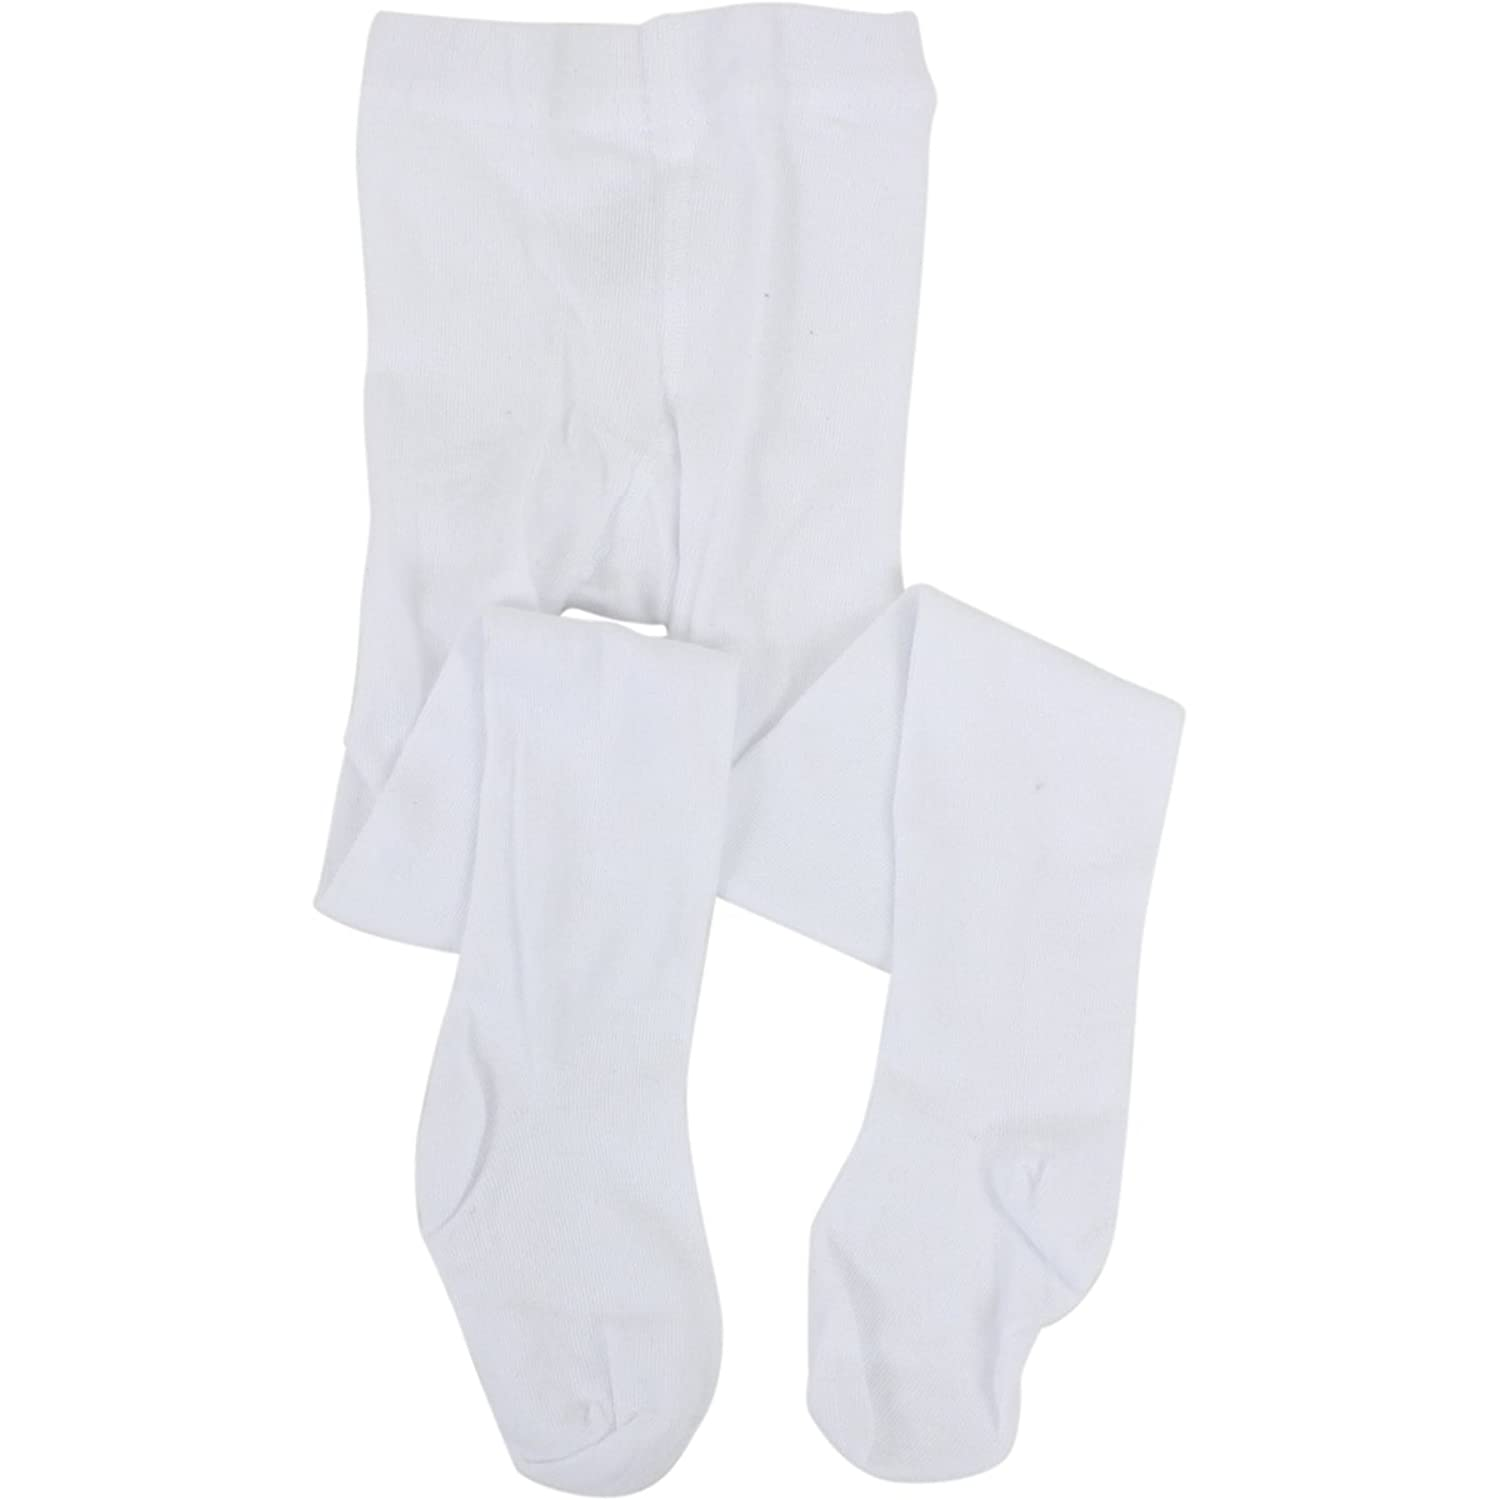 Stride Rite Toddler/Little Kid/Big Girl's White Comfort Seam Toe Tights